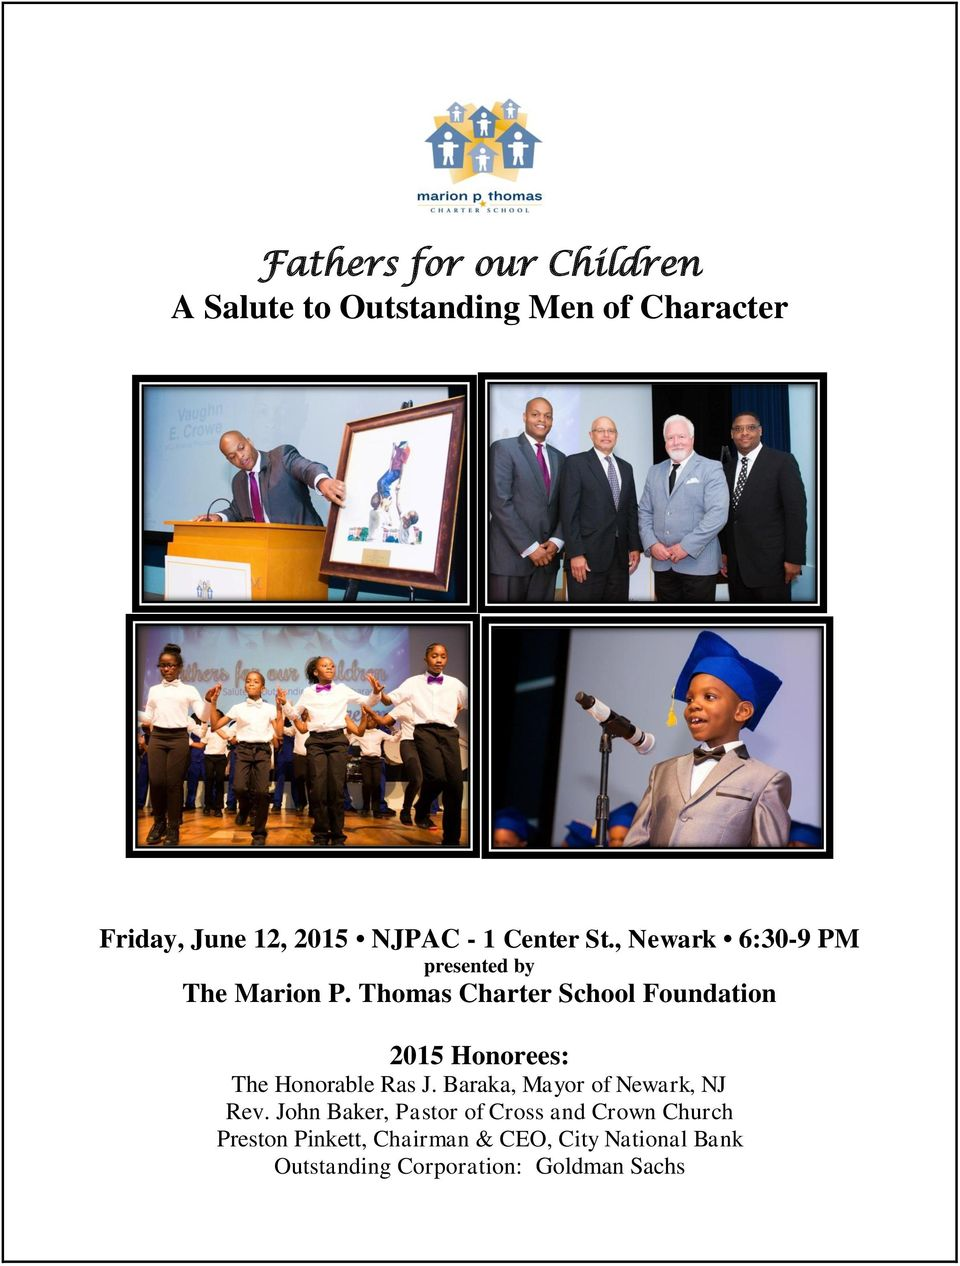 , Newark 6:30-9 PM presented by The Foundation 2015 Honorees: The Honorable Ras J.